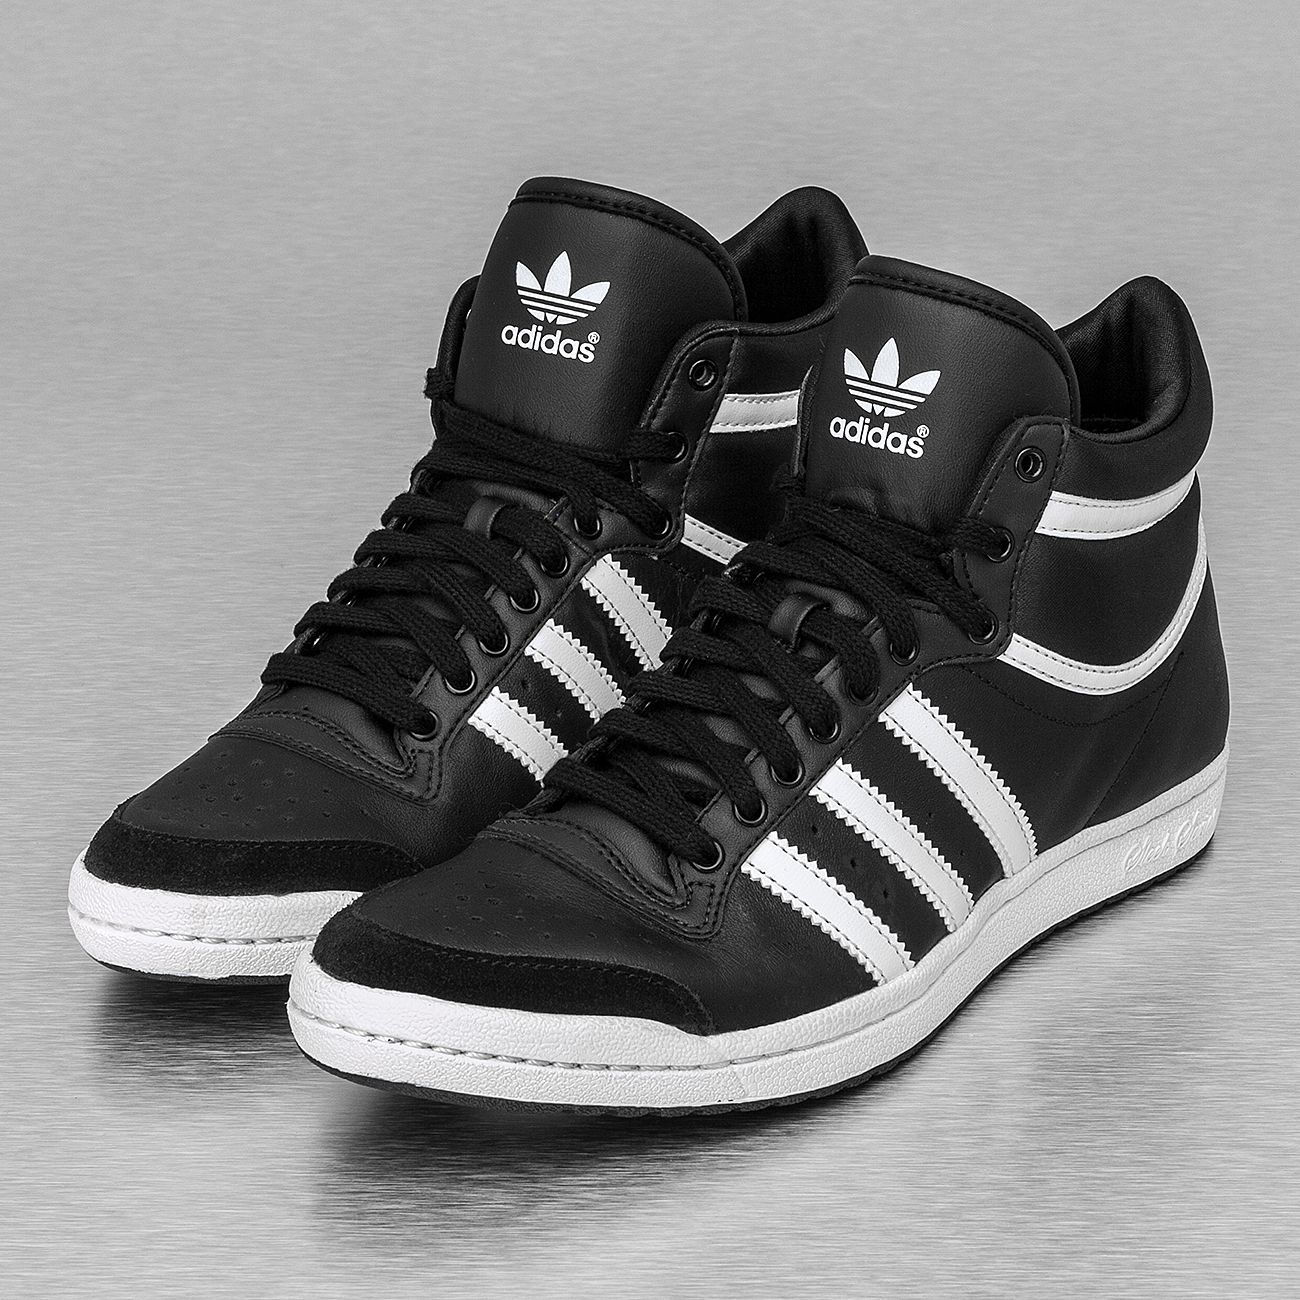 best website 284f4 523da adidas hi top women Training Shoes